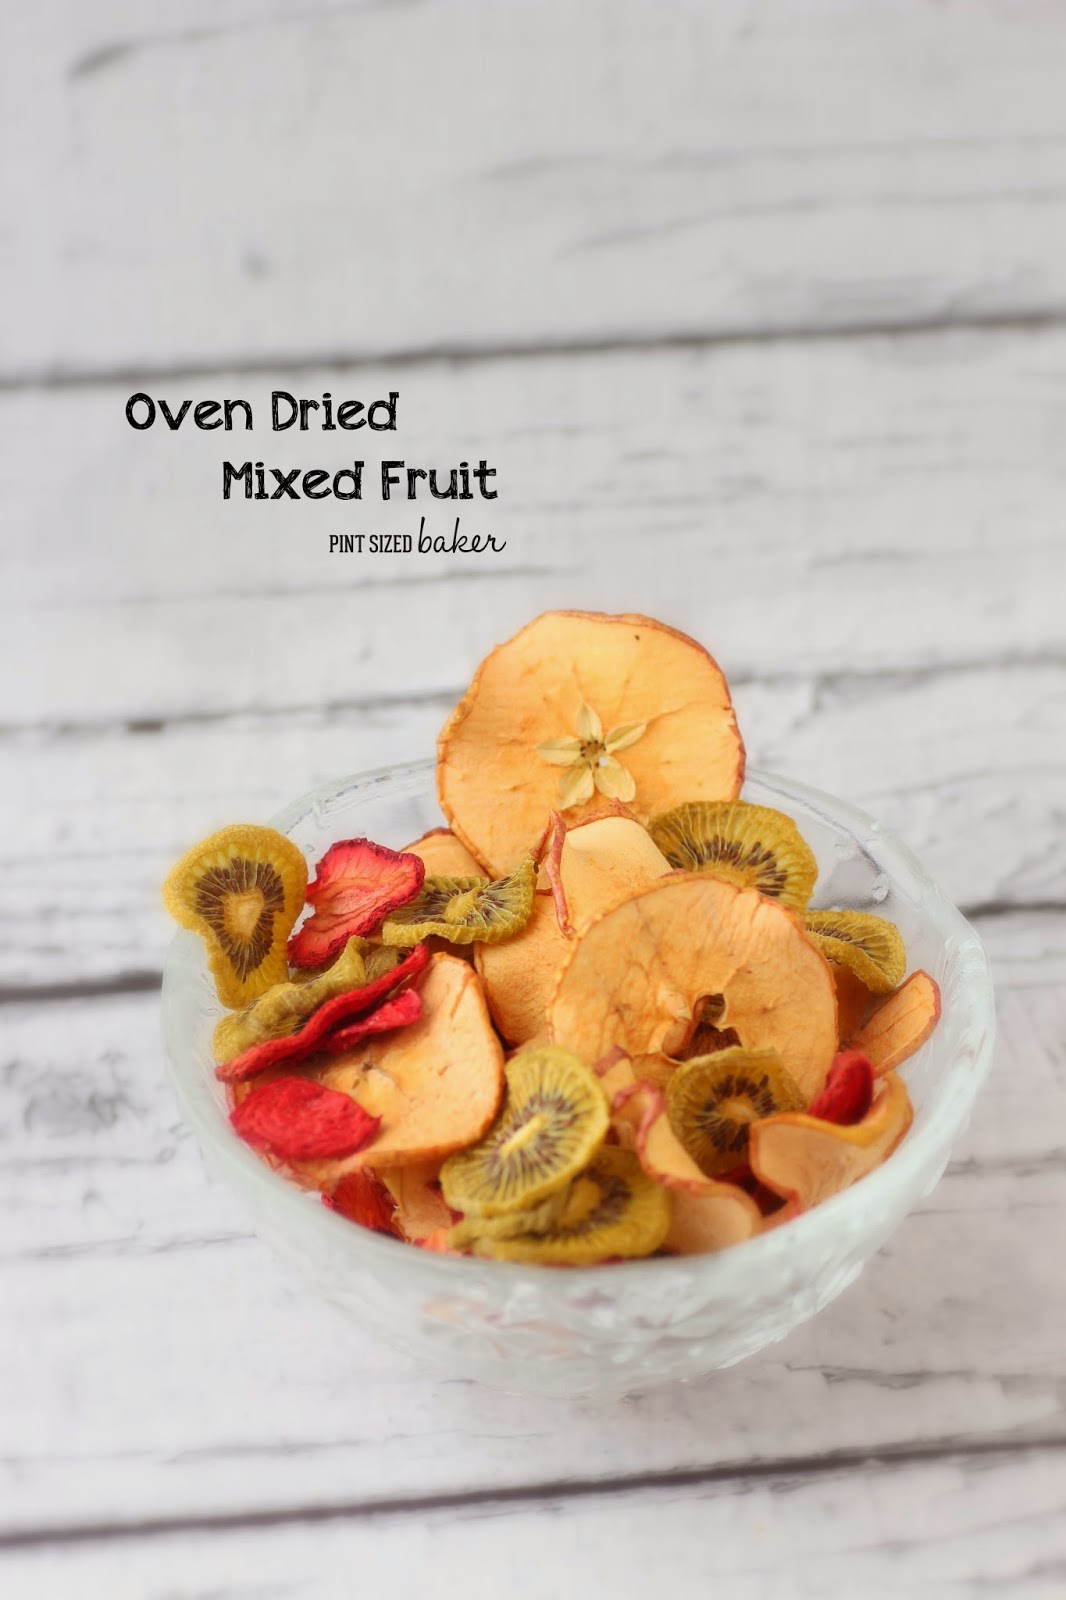 No refined sugars or additives, just dehydrated fruit made in your oven.